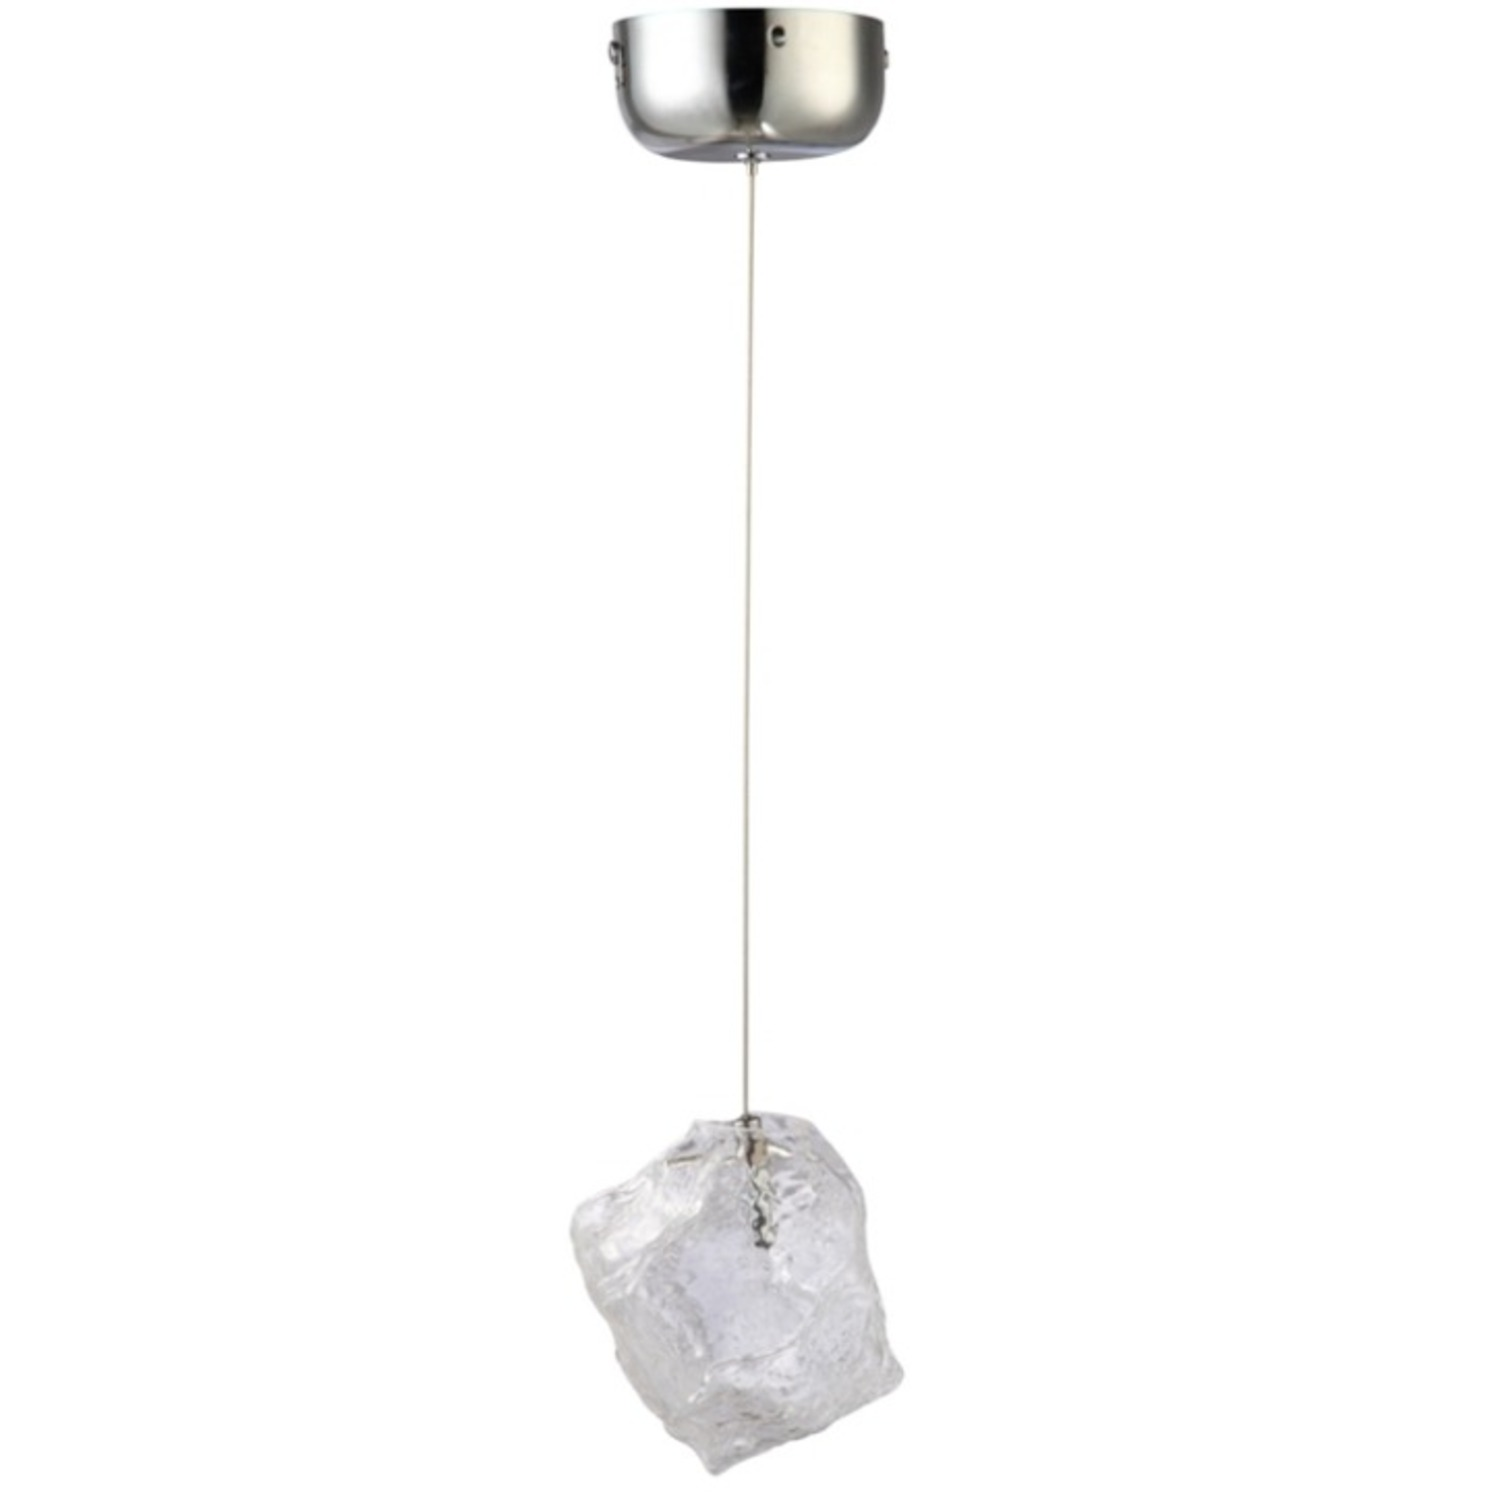 Lamp In Clear Glass Ice Pendant Design - image-1